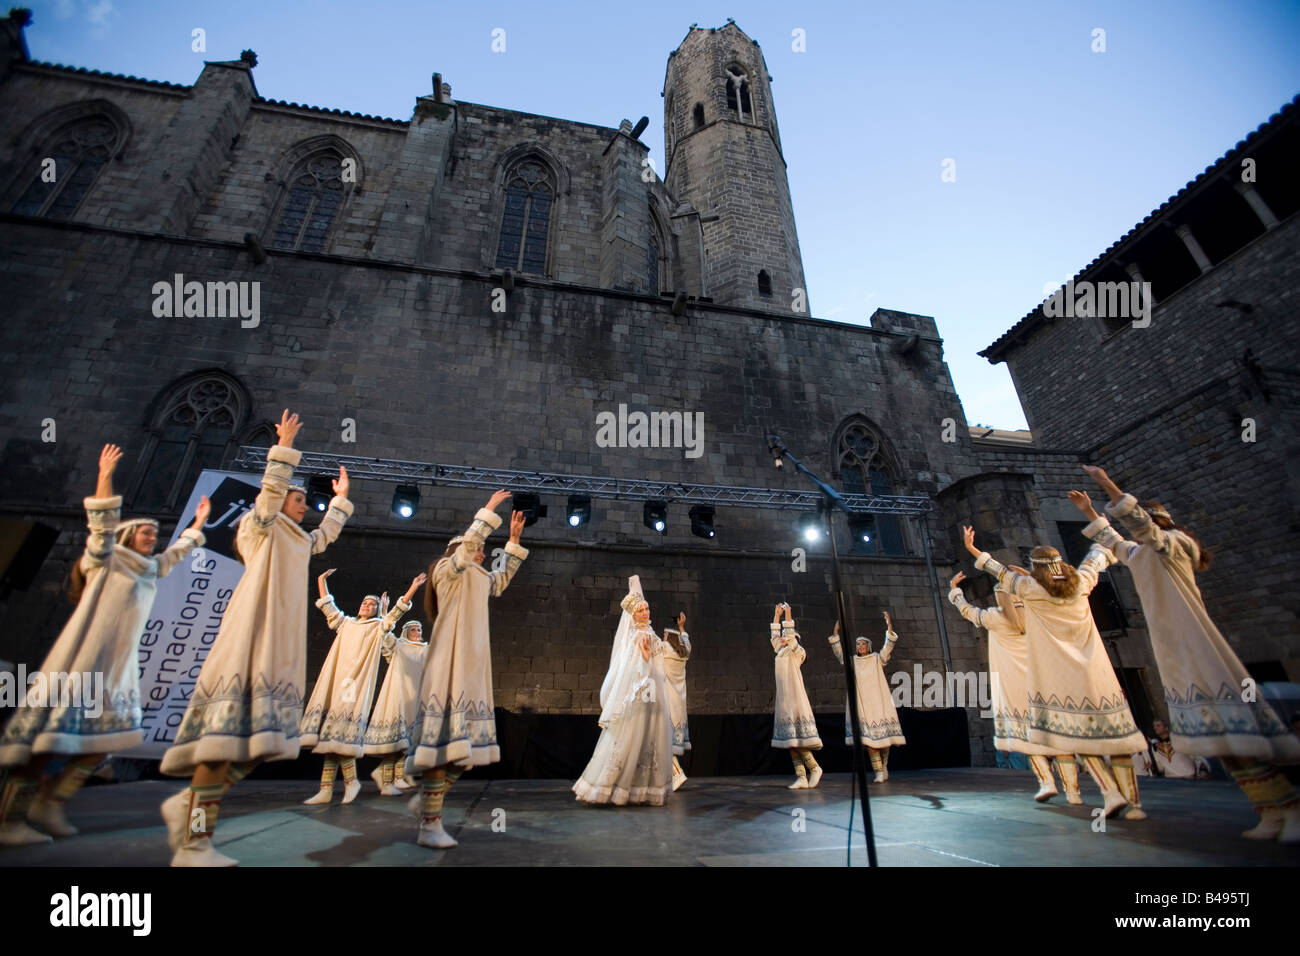 Folk group from the Russian Republic of Komis performing at Placa del Rei Barcelona Spain - Stock Image